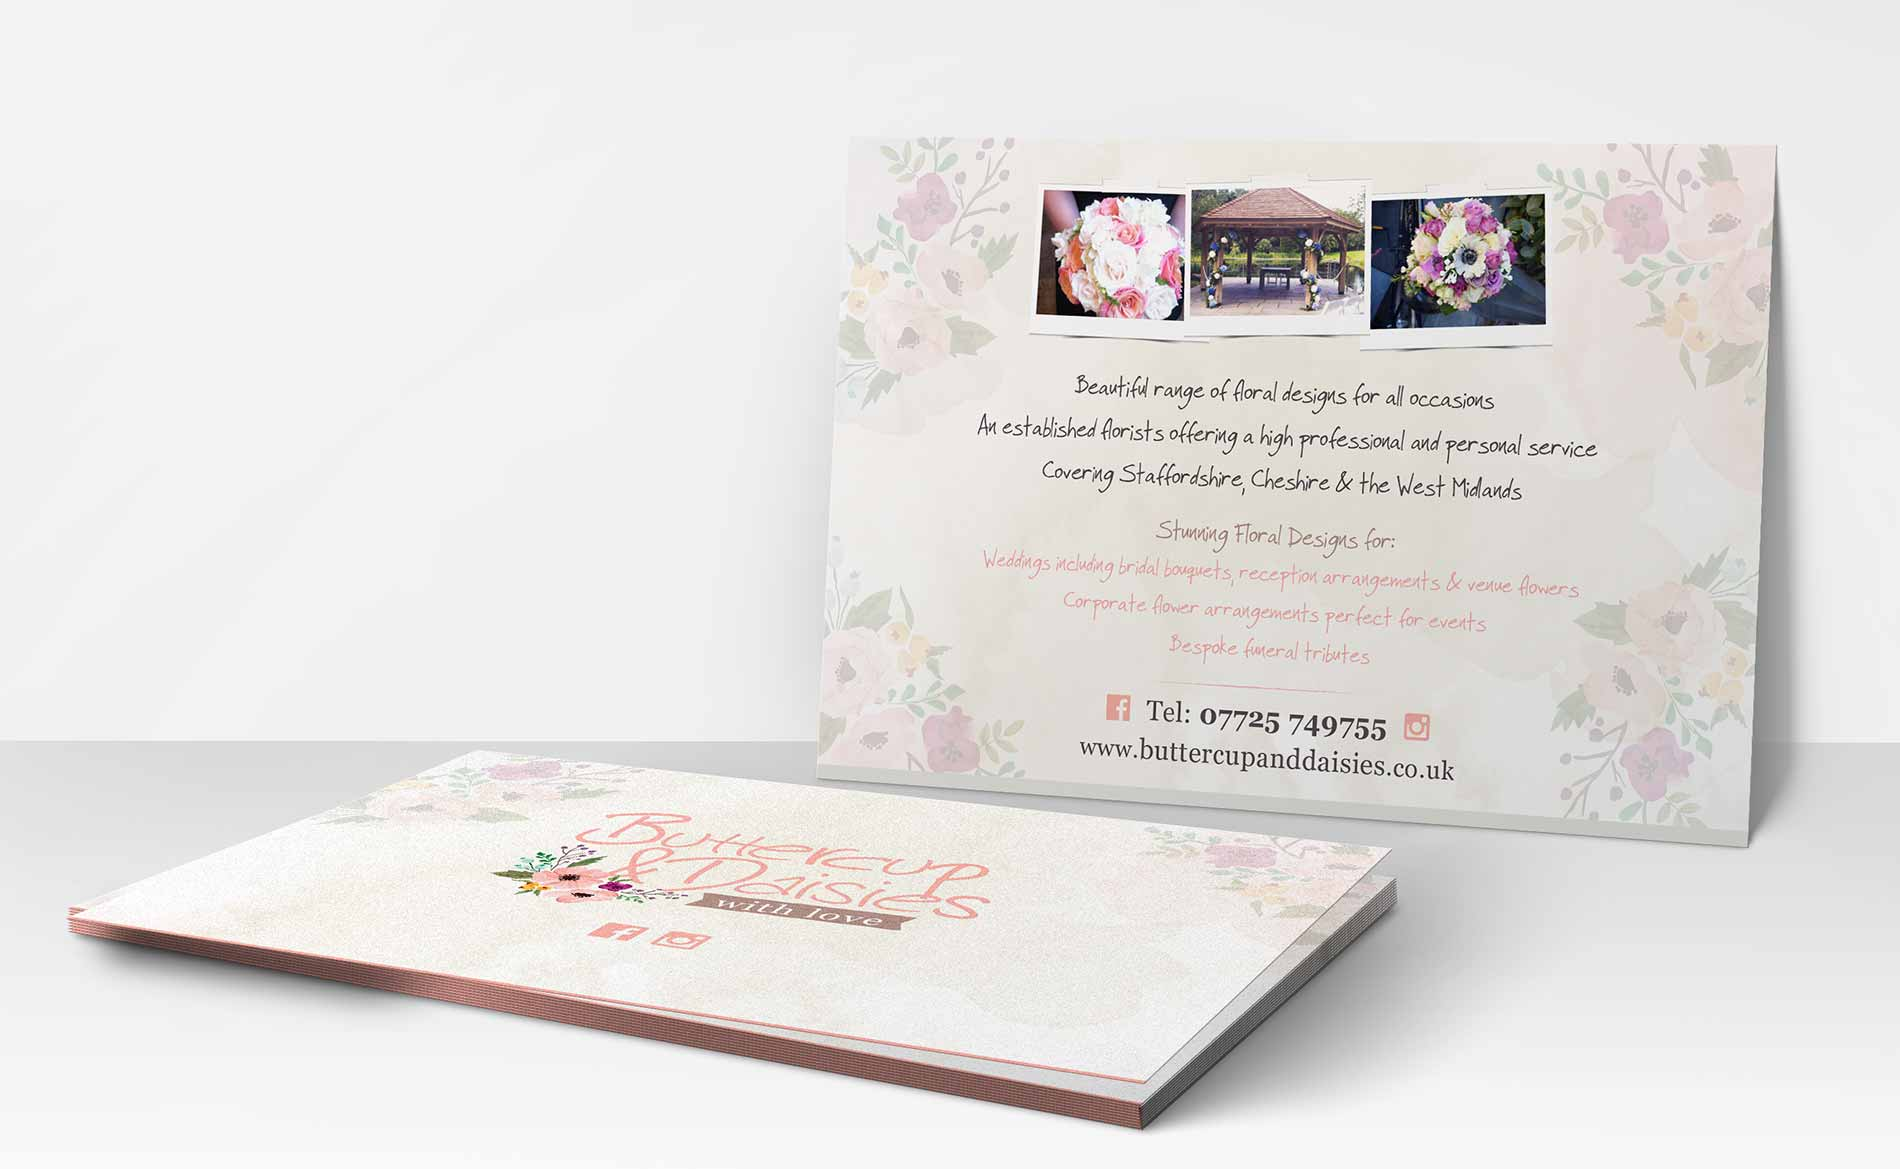 Digital Print, Buttercup & Daisies with Love, Postcards, Stoke-on-Trent, Staffordshire